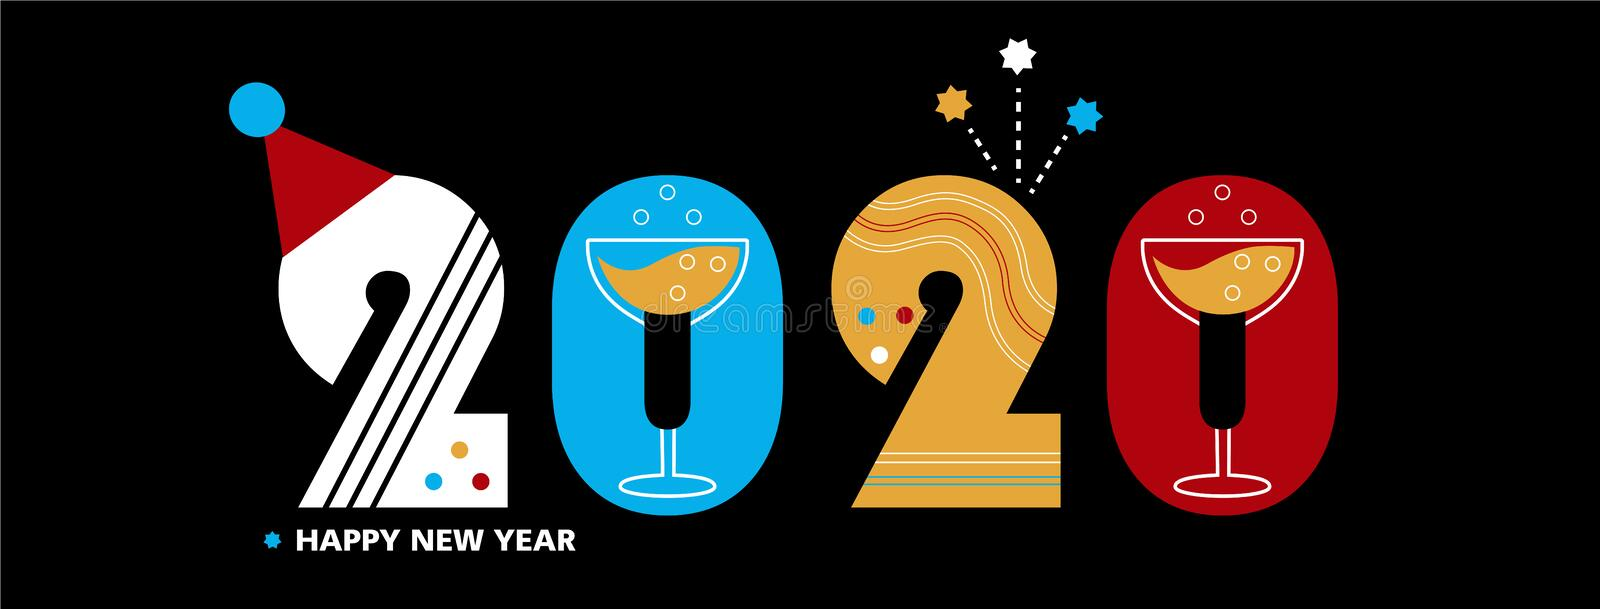 2020 - New Year`s facebook or site cover, vector template royalty free illustration